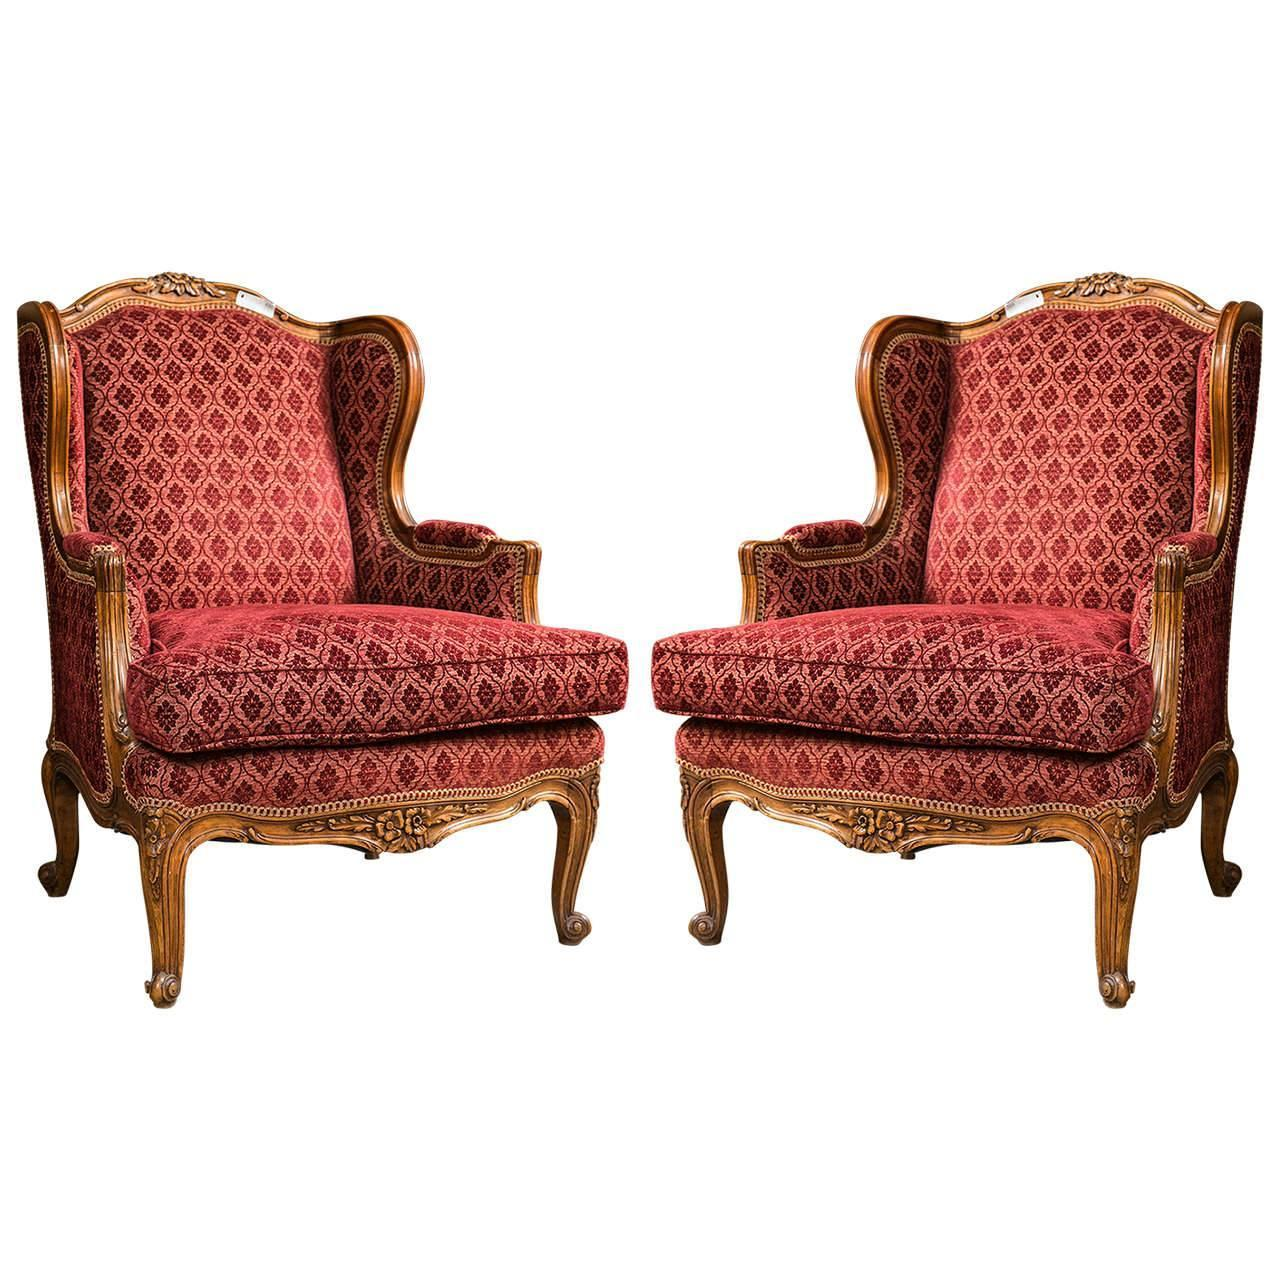 Pair of Louis XV Style French Bergere Chairs For Sale at